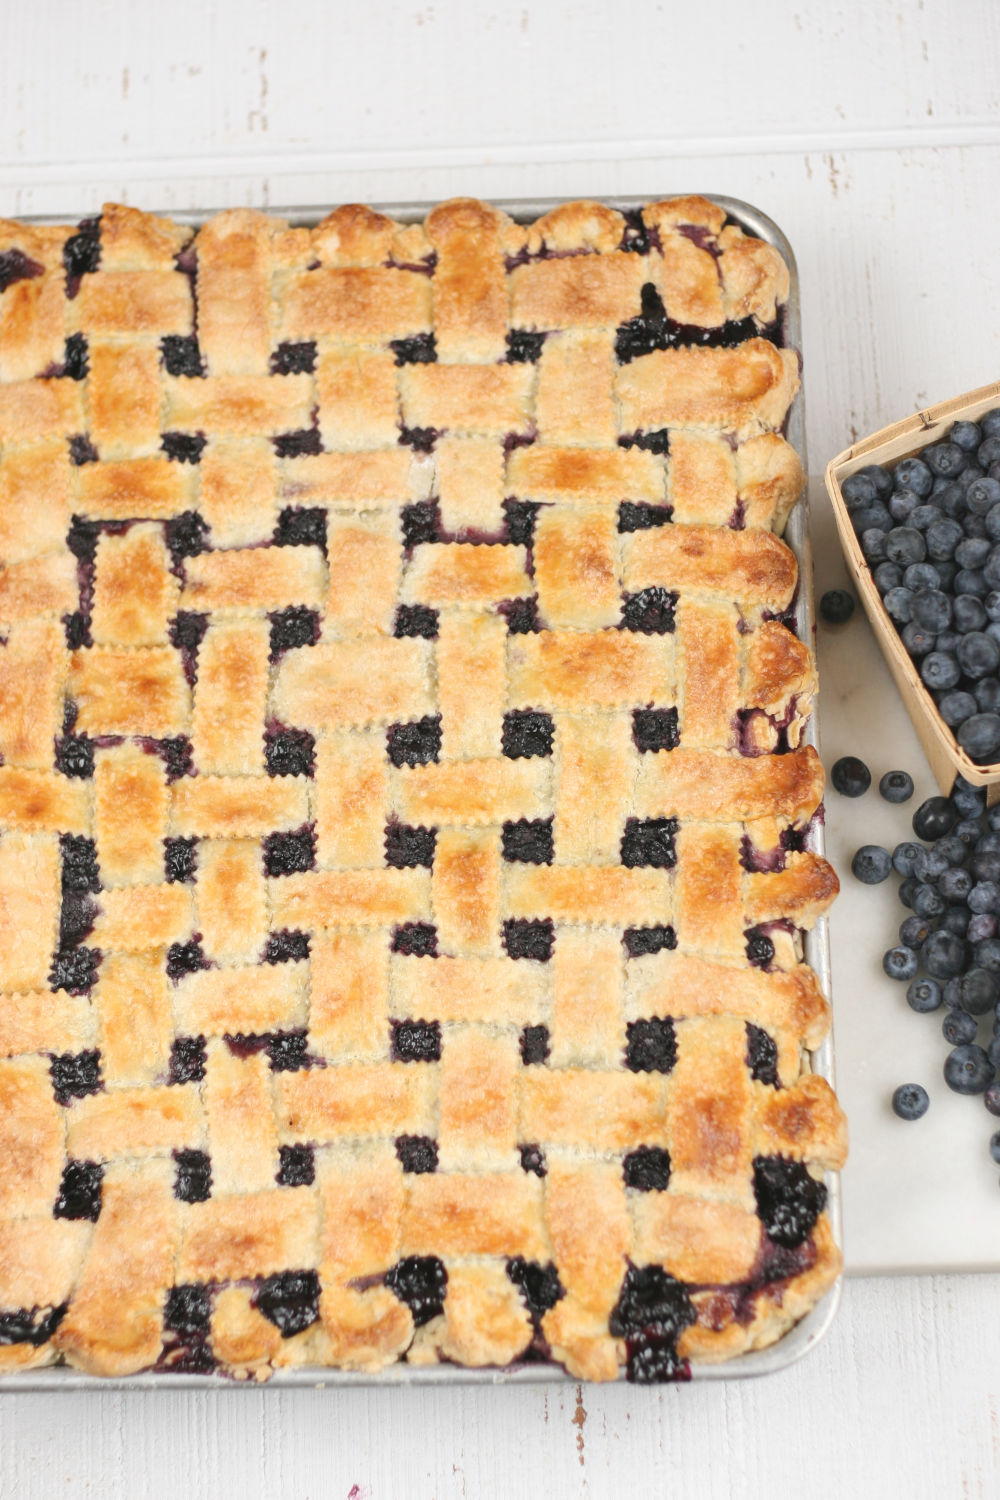 blueberry pie on a half sheet pan with homemade crust.